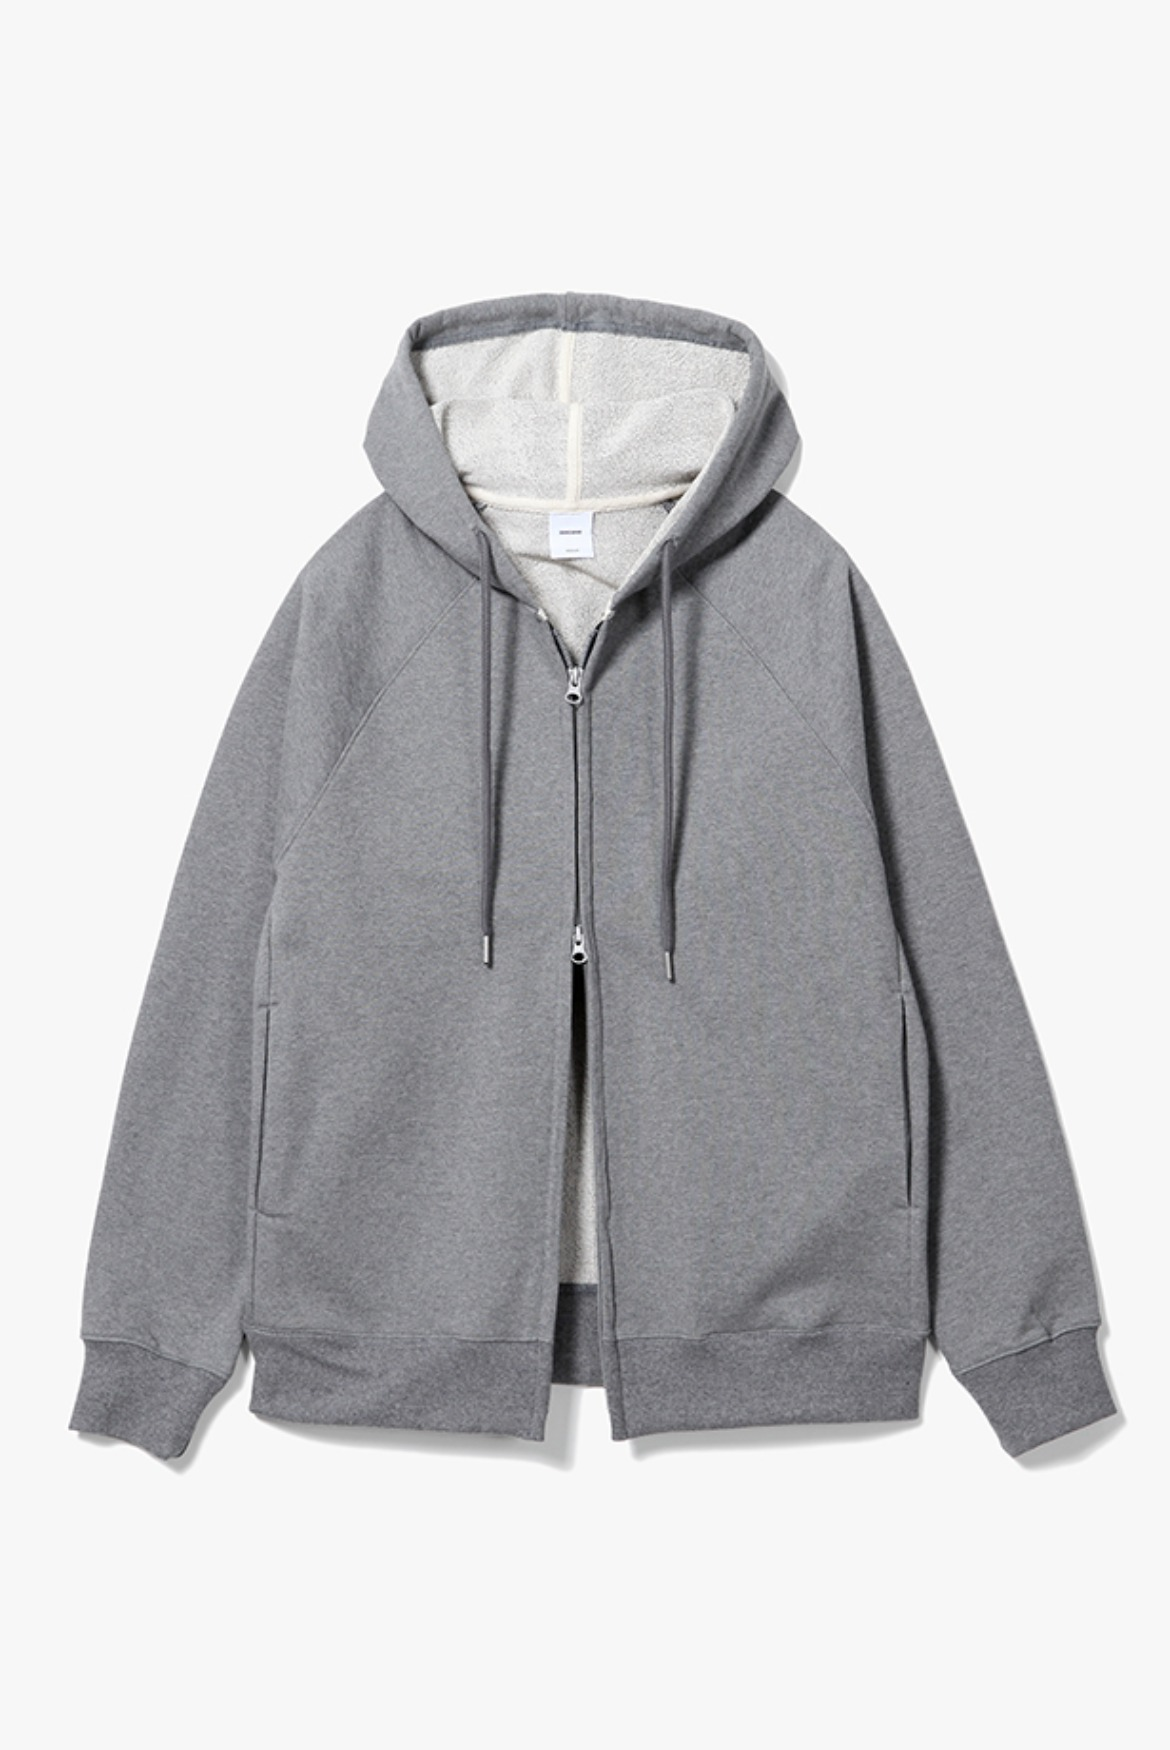 Classic Raglan Hoodie Zip Up [Charcoal]